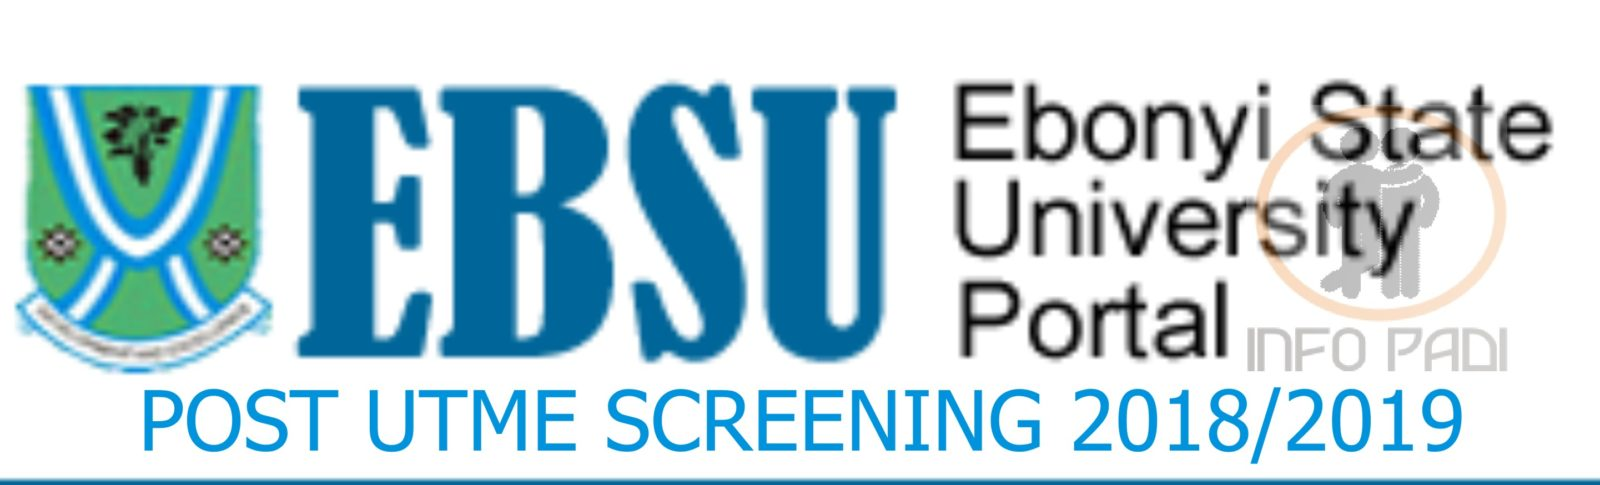 Ebonyi State University (EBSU) Post UTME 2019/2020 Form- View cut-off mark for all departments